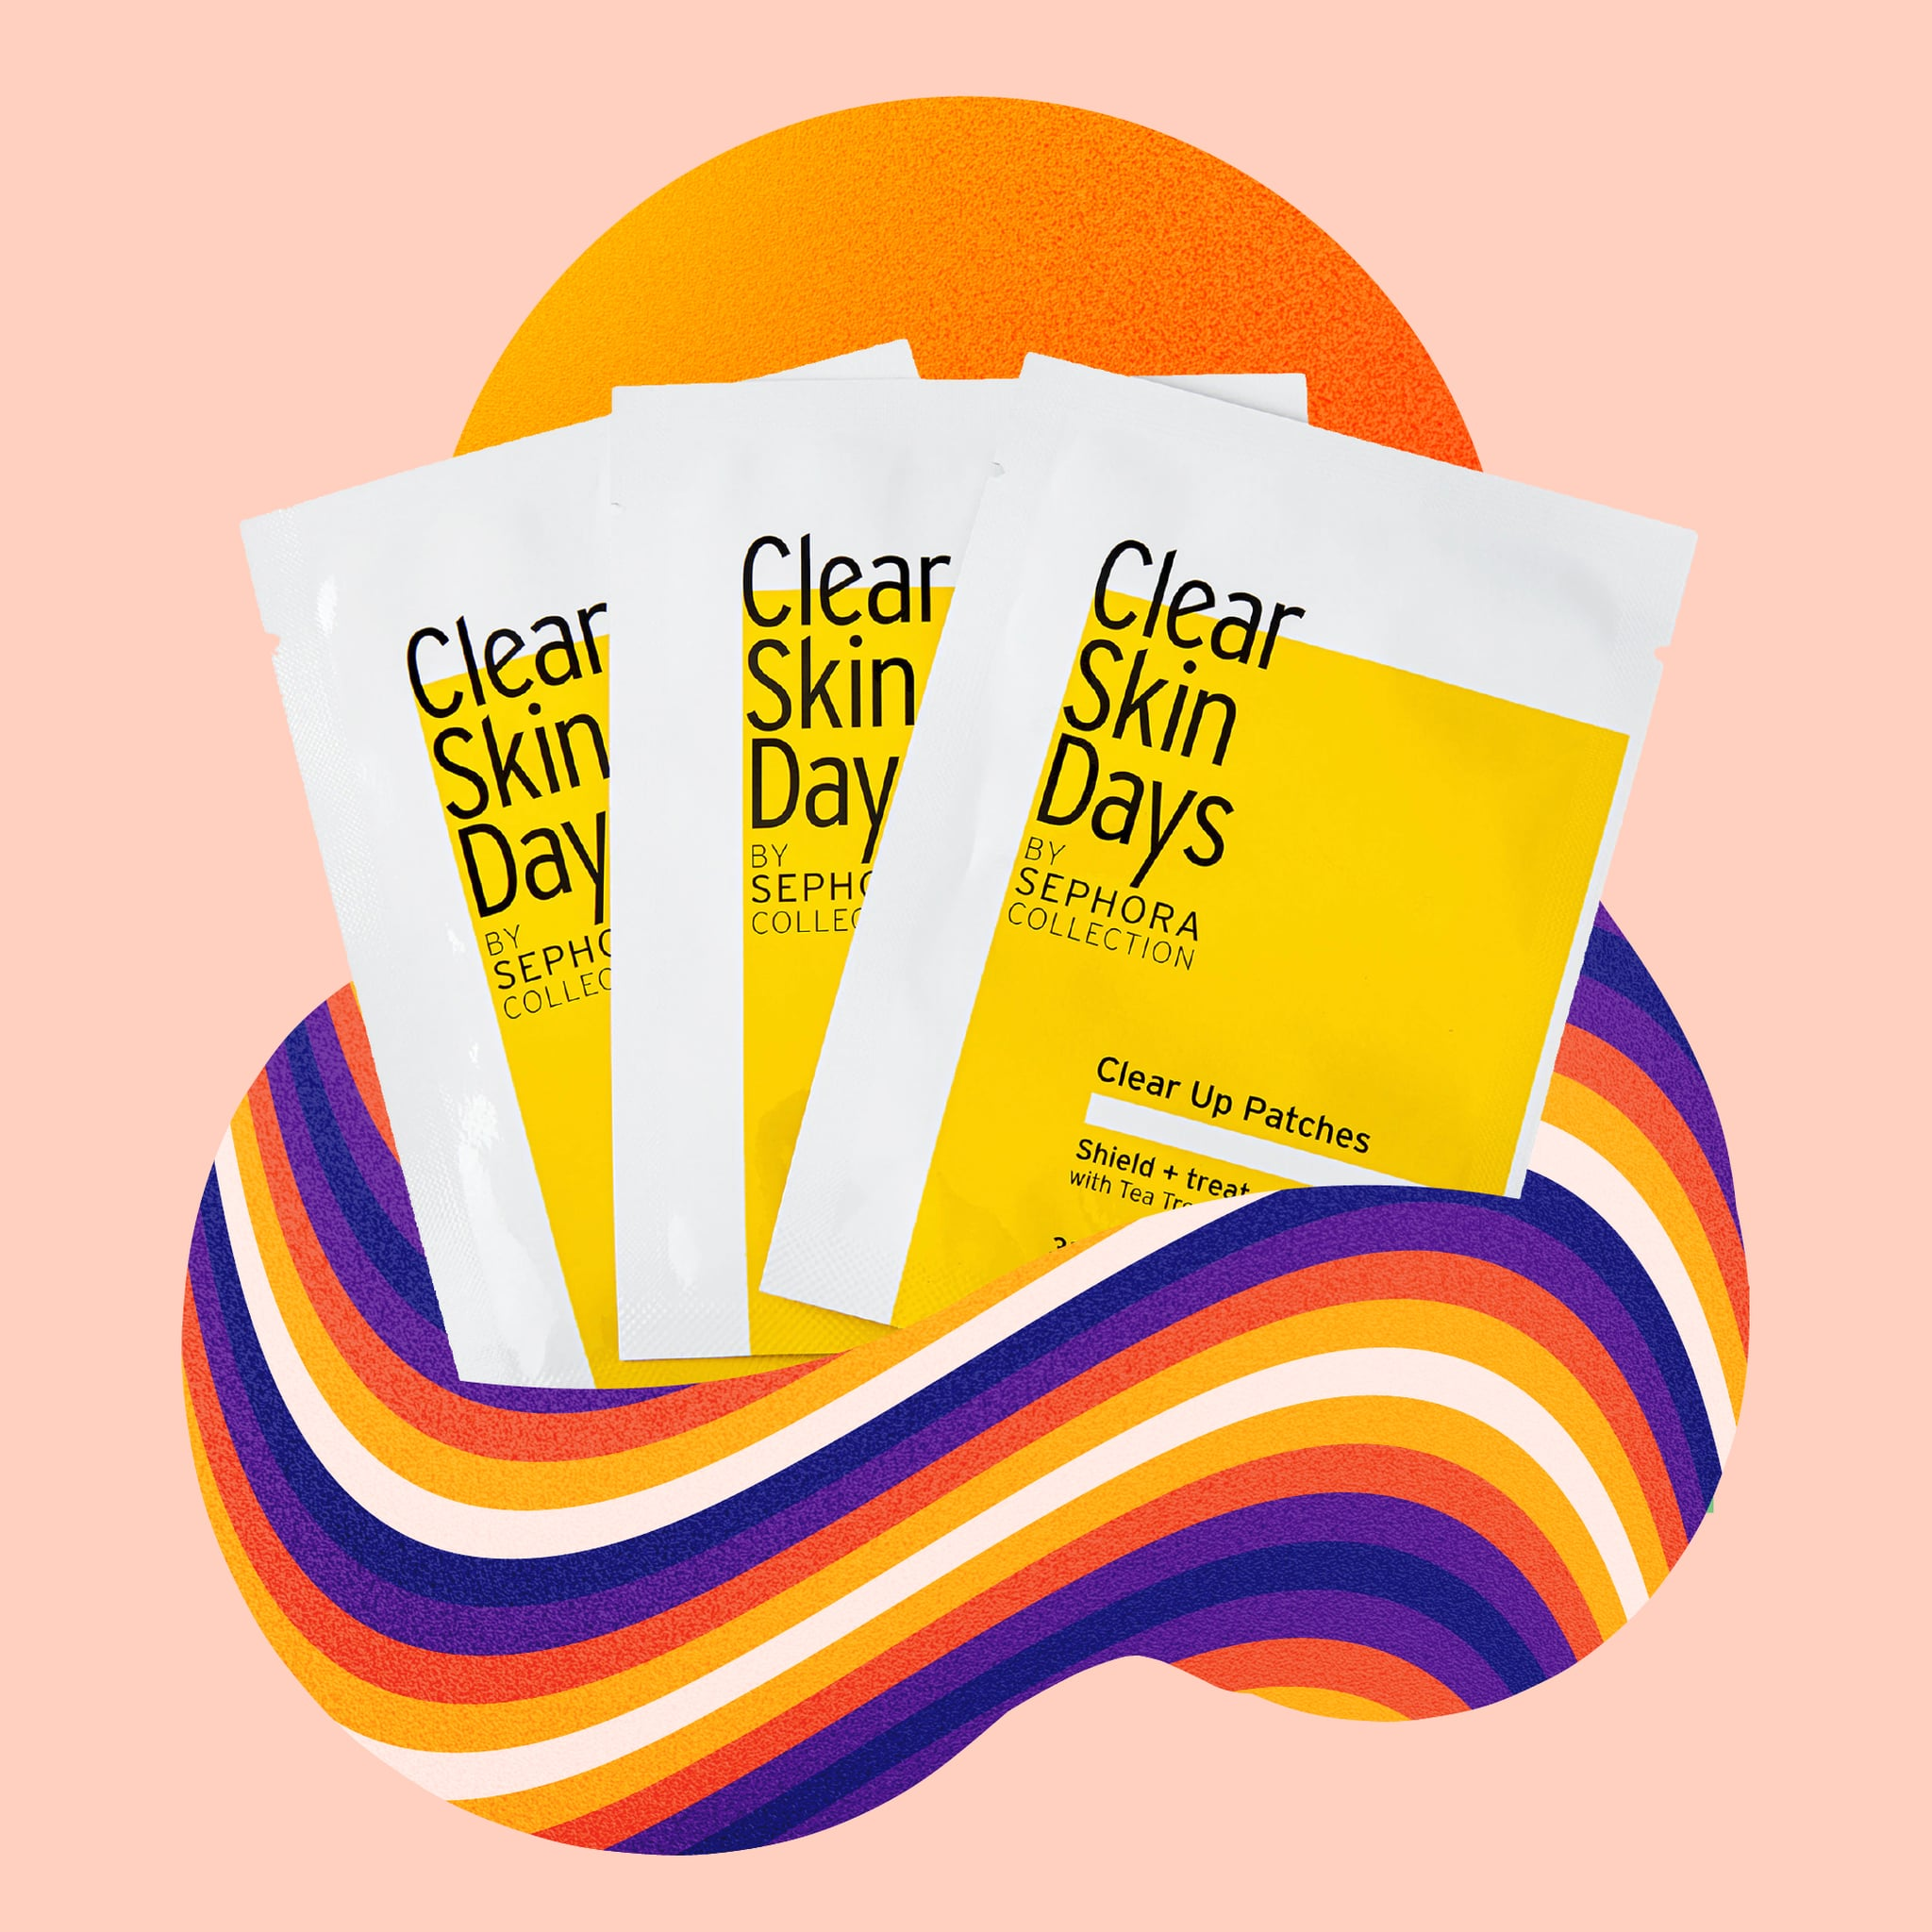 Sephora Collection Clear Skin Days by Sephora Collection Clear Up Patches